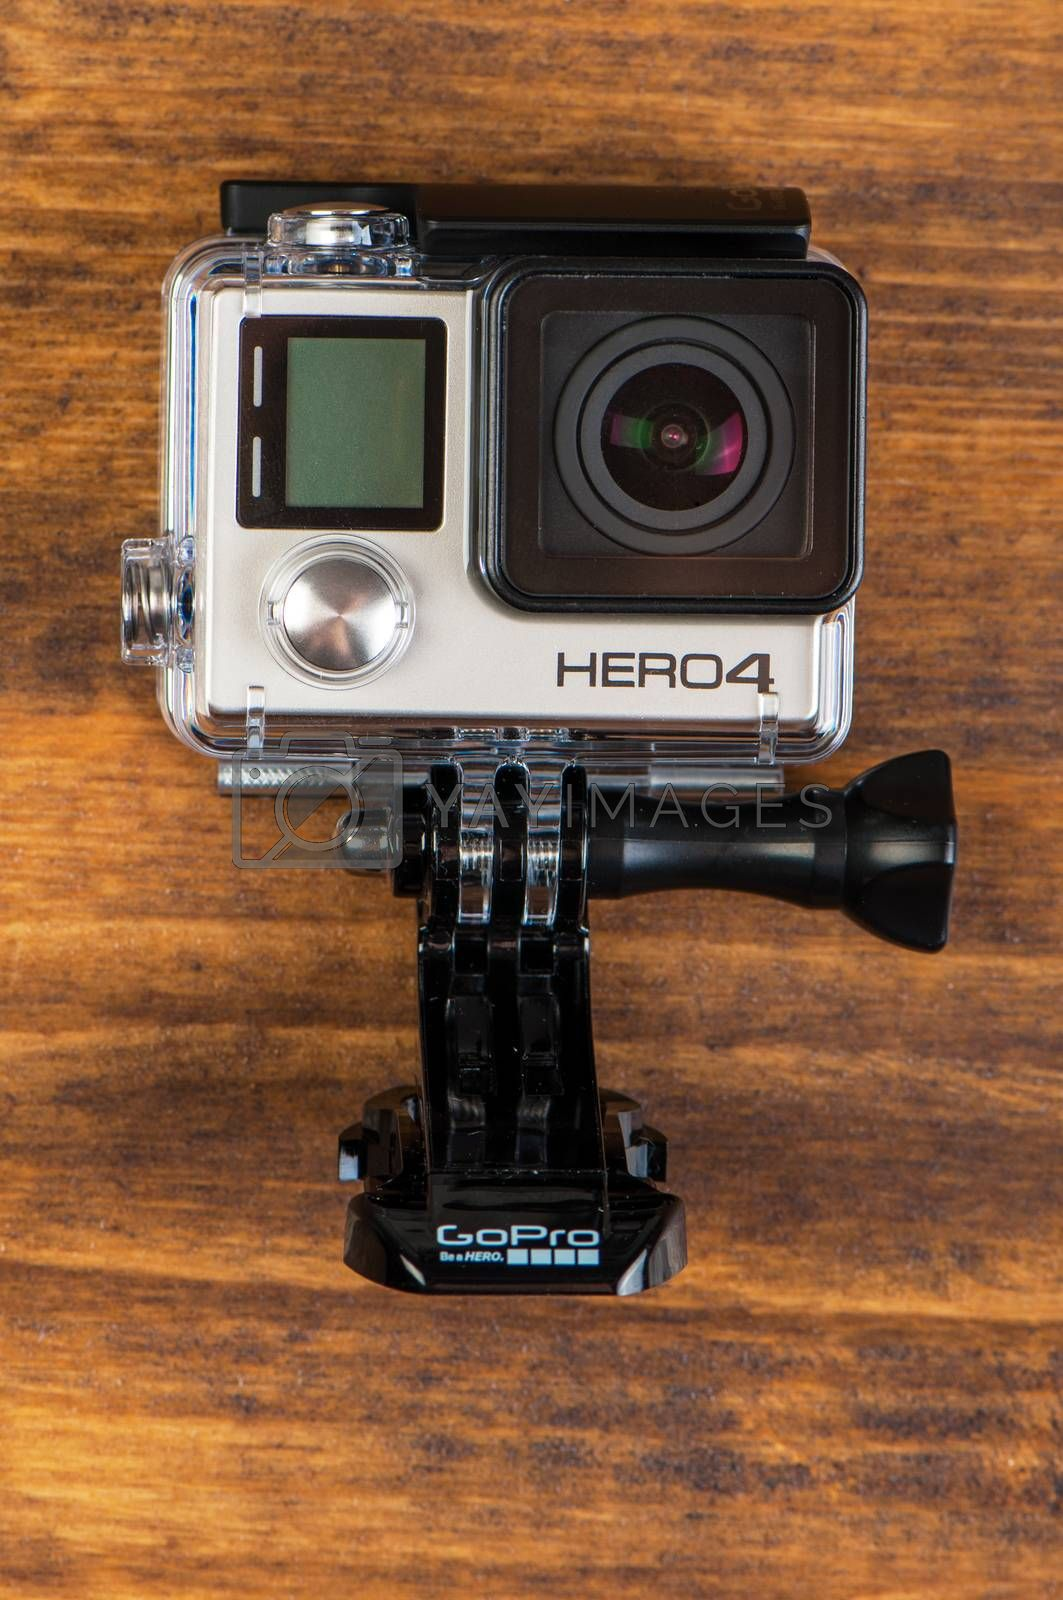 NOVI SAD, SERBIA - JUNE 19, 2016: GoPro Hero 4 Black waterproof action camera announced in september 2014 weights only 152g with waterproof housing, illustrative editorial